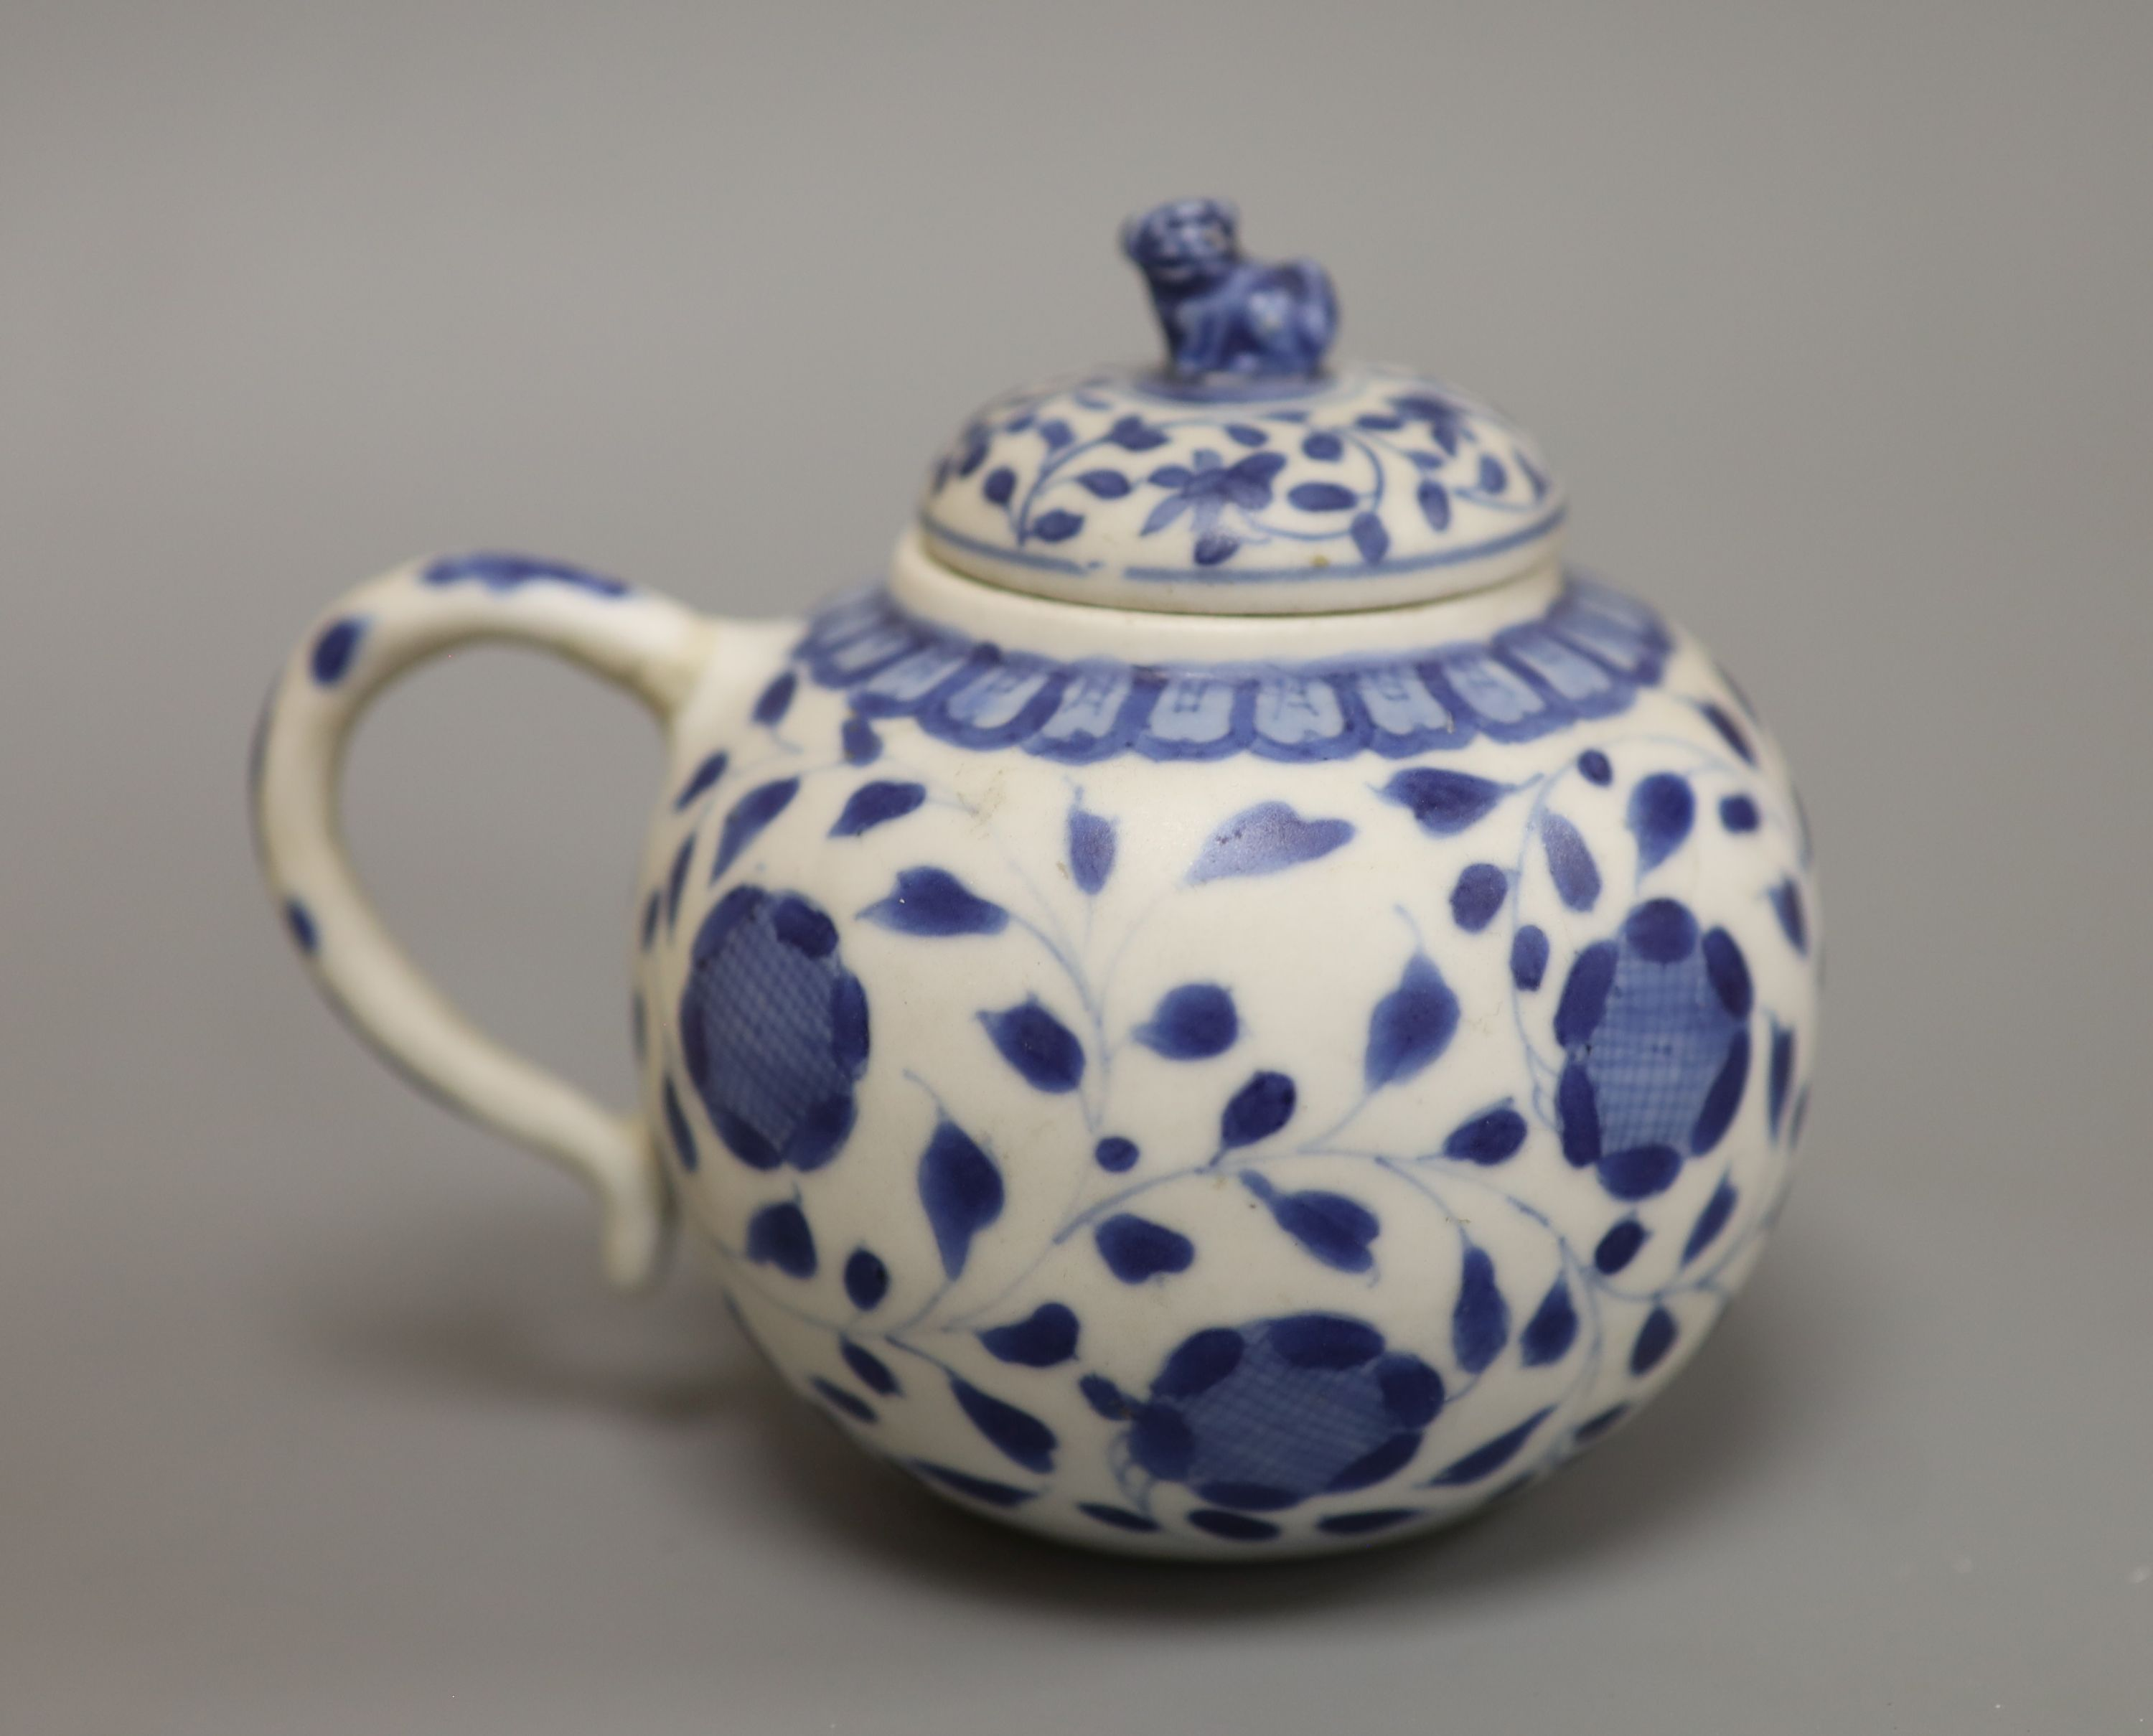 A Chinese Vungtao cargo blue and white mustard pot and cover, height 9cm - Image 2 of 7